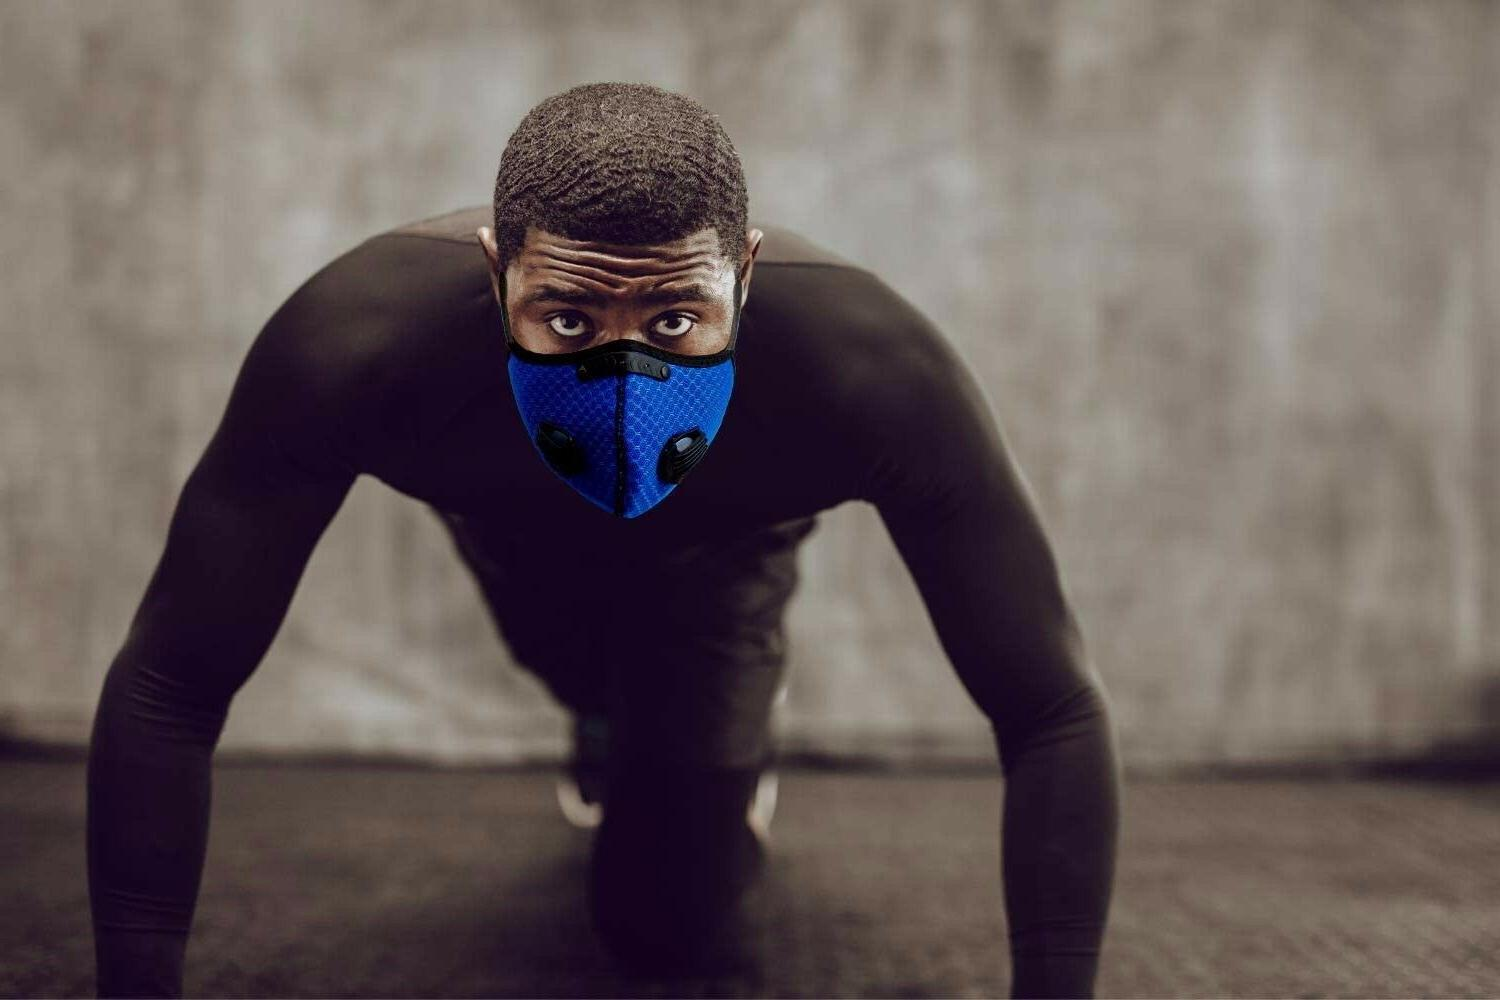 Mask/Workout Mask for